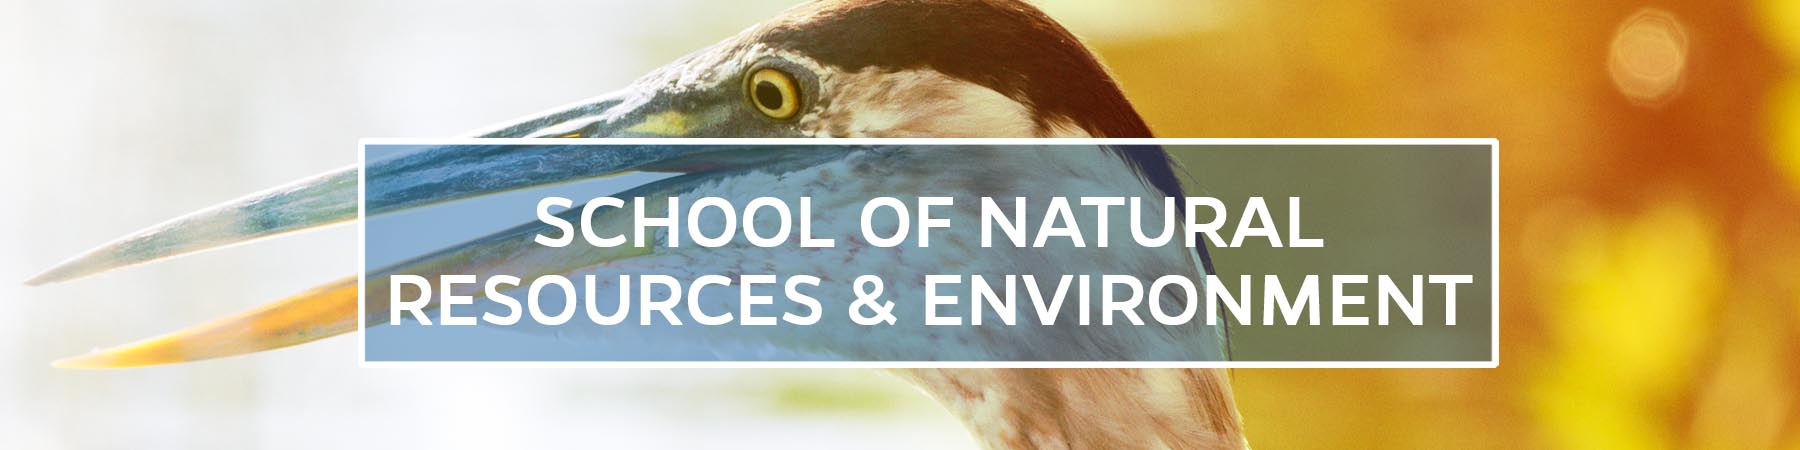 School of Natural Resources and Environment